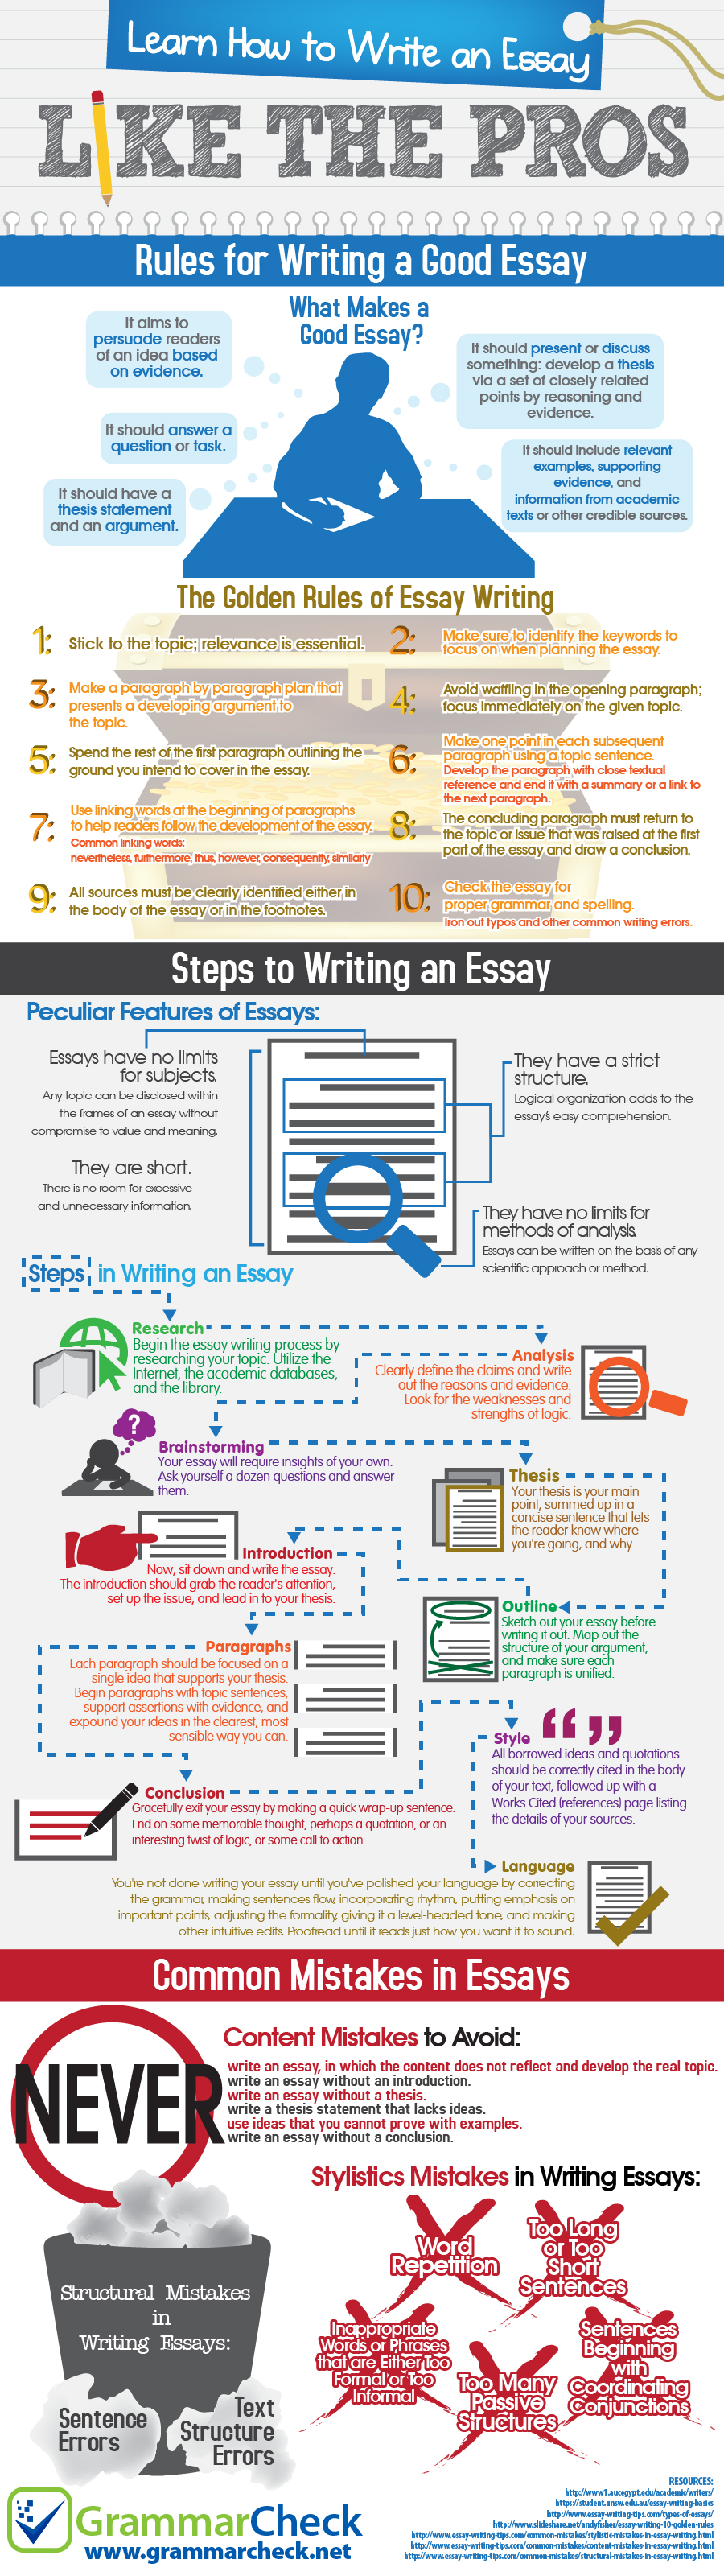 how to write an essay like the pros infographic